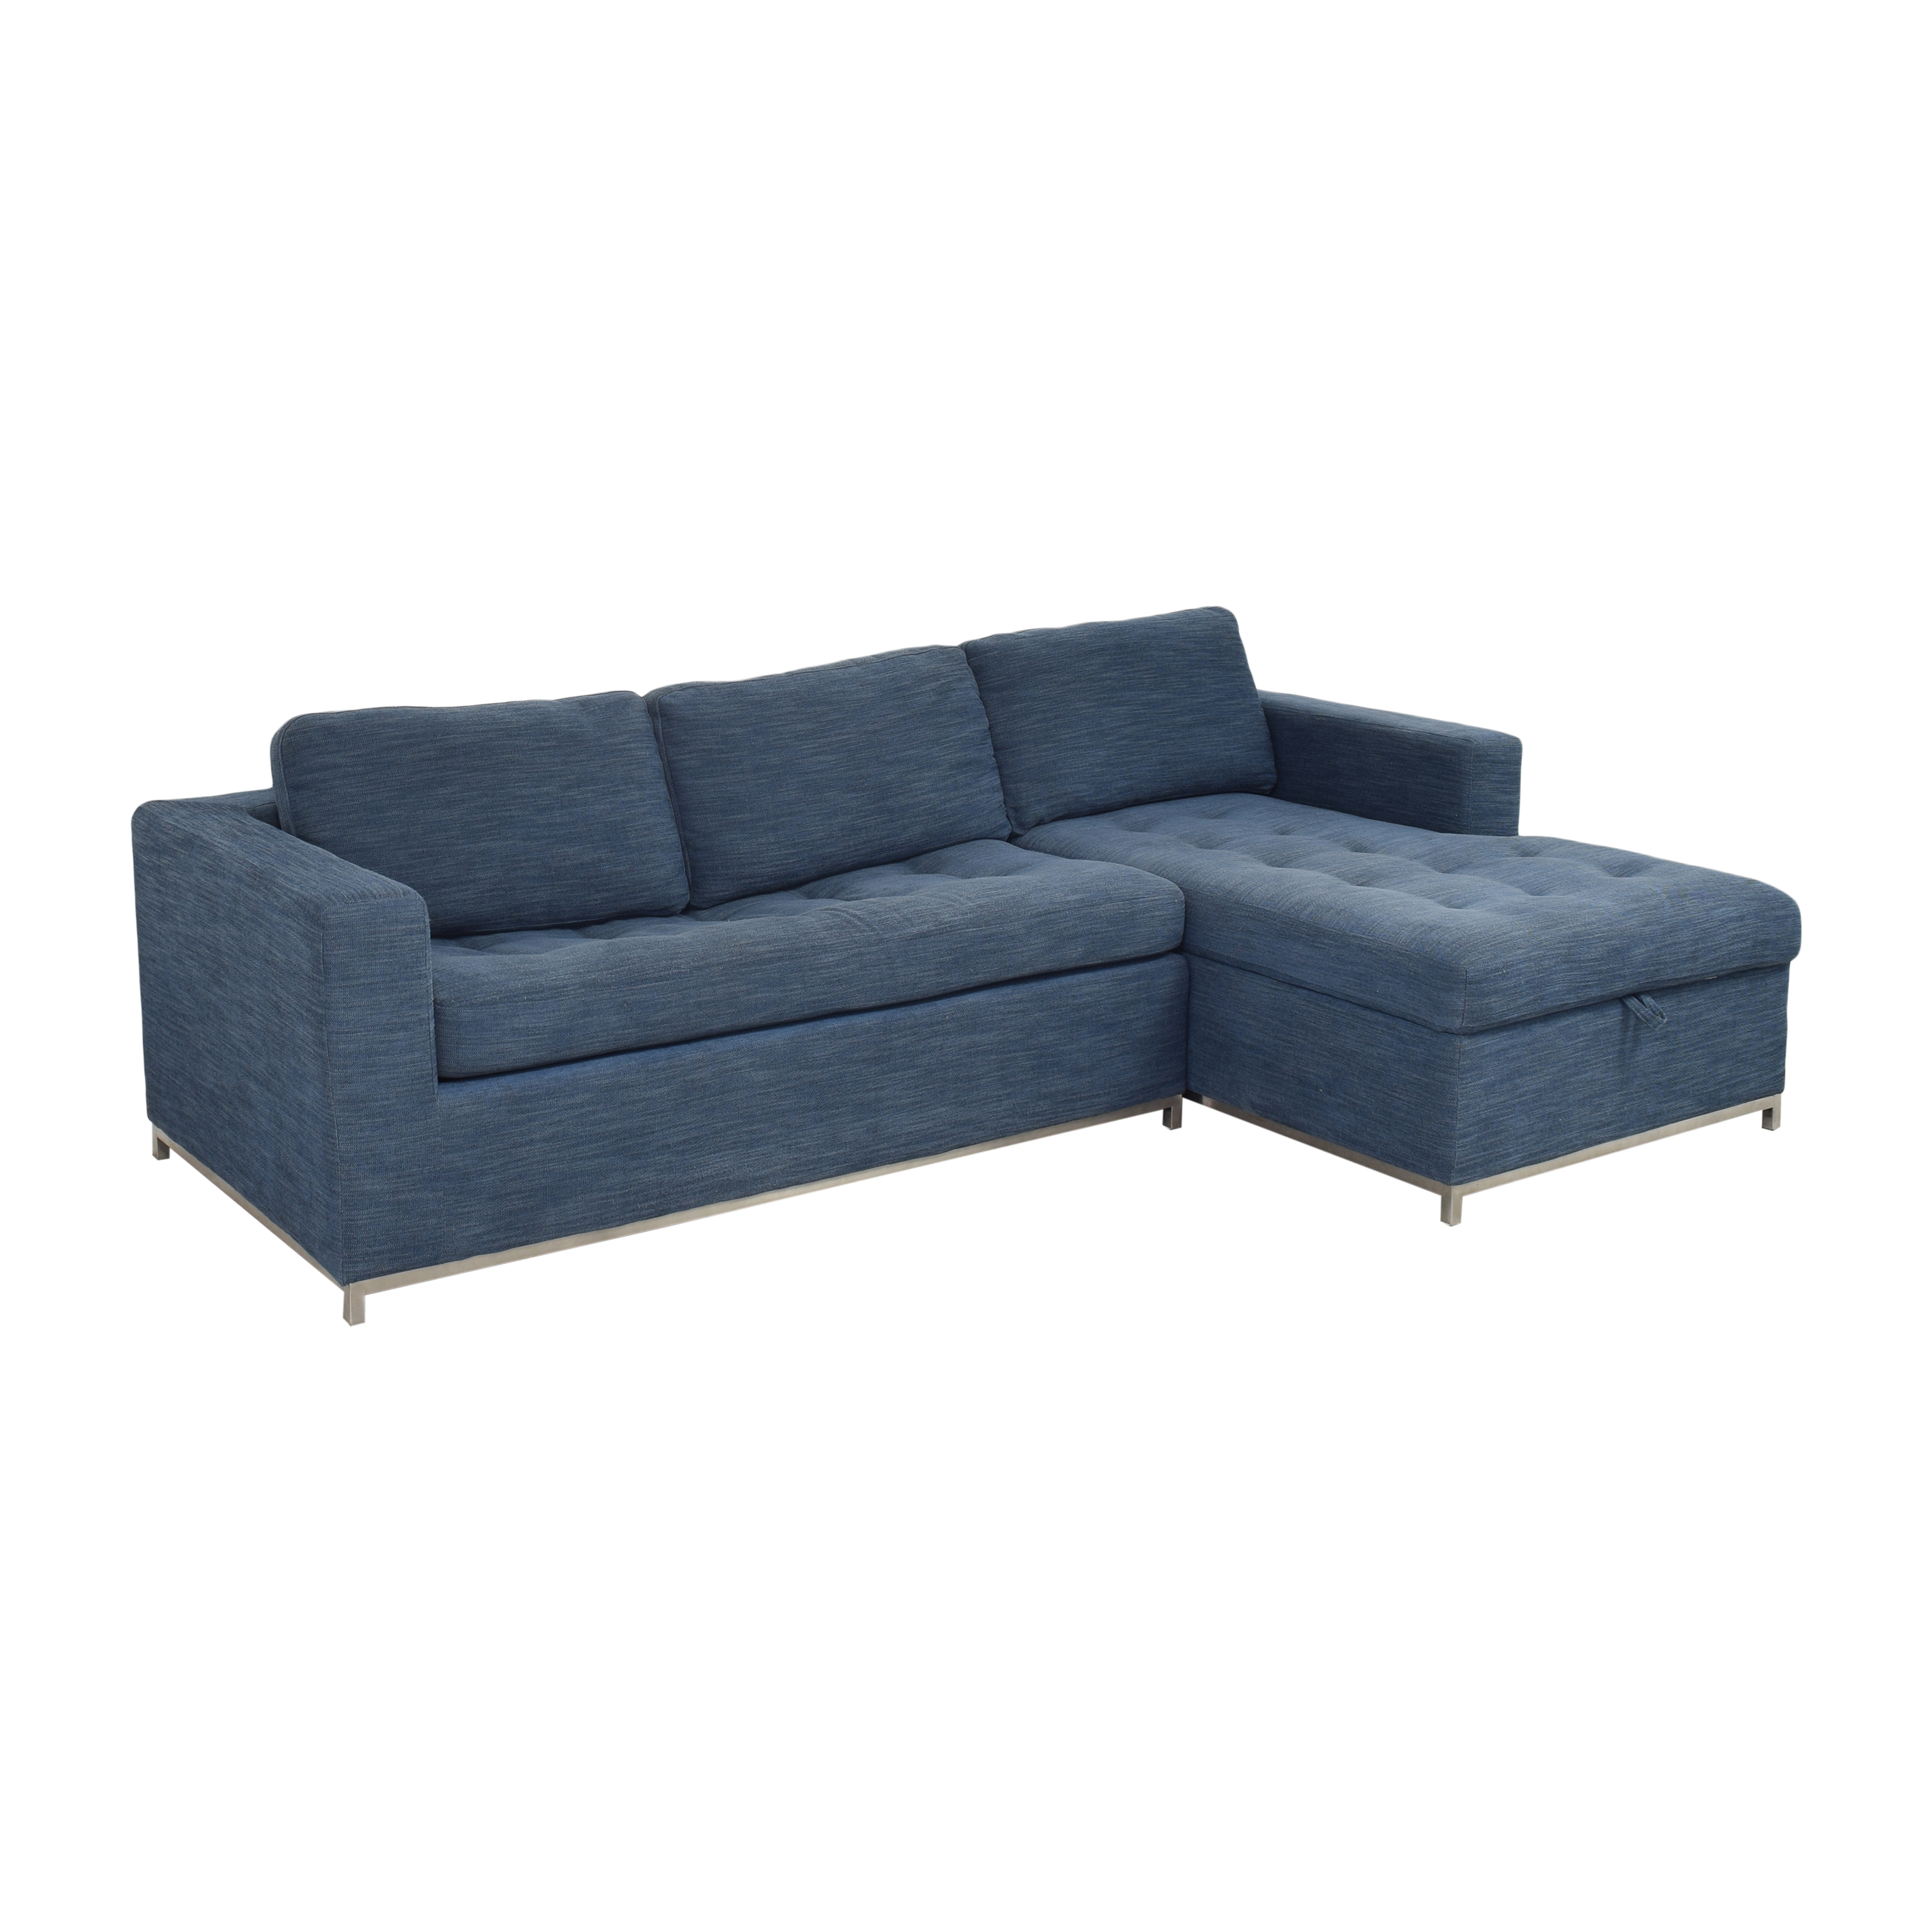 Article Article Soma Sectional Sofa Bed dimensions